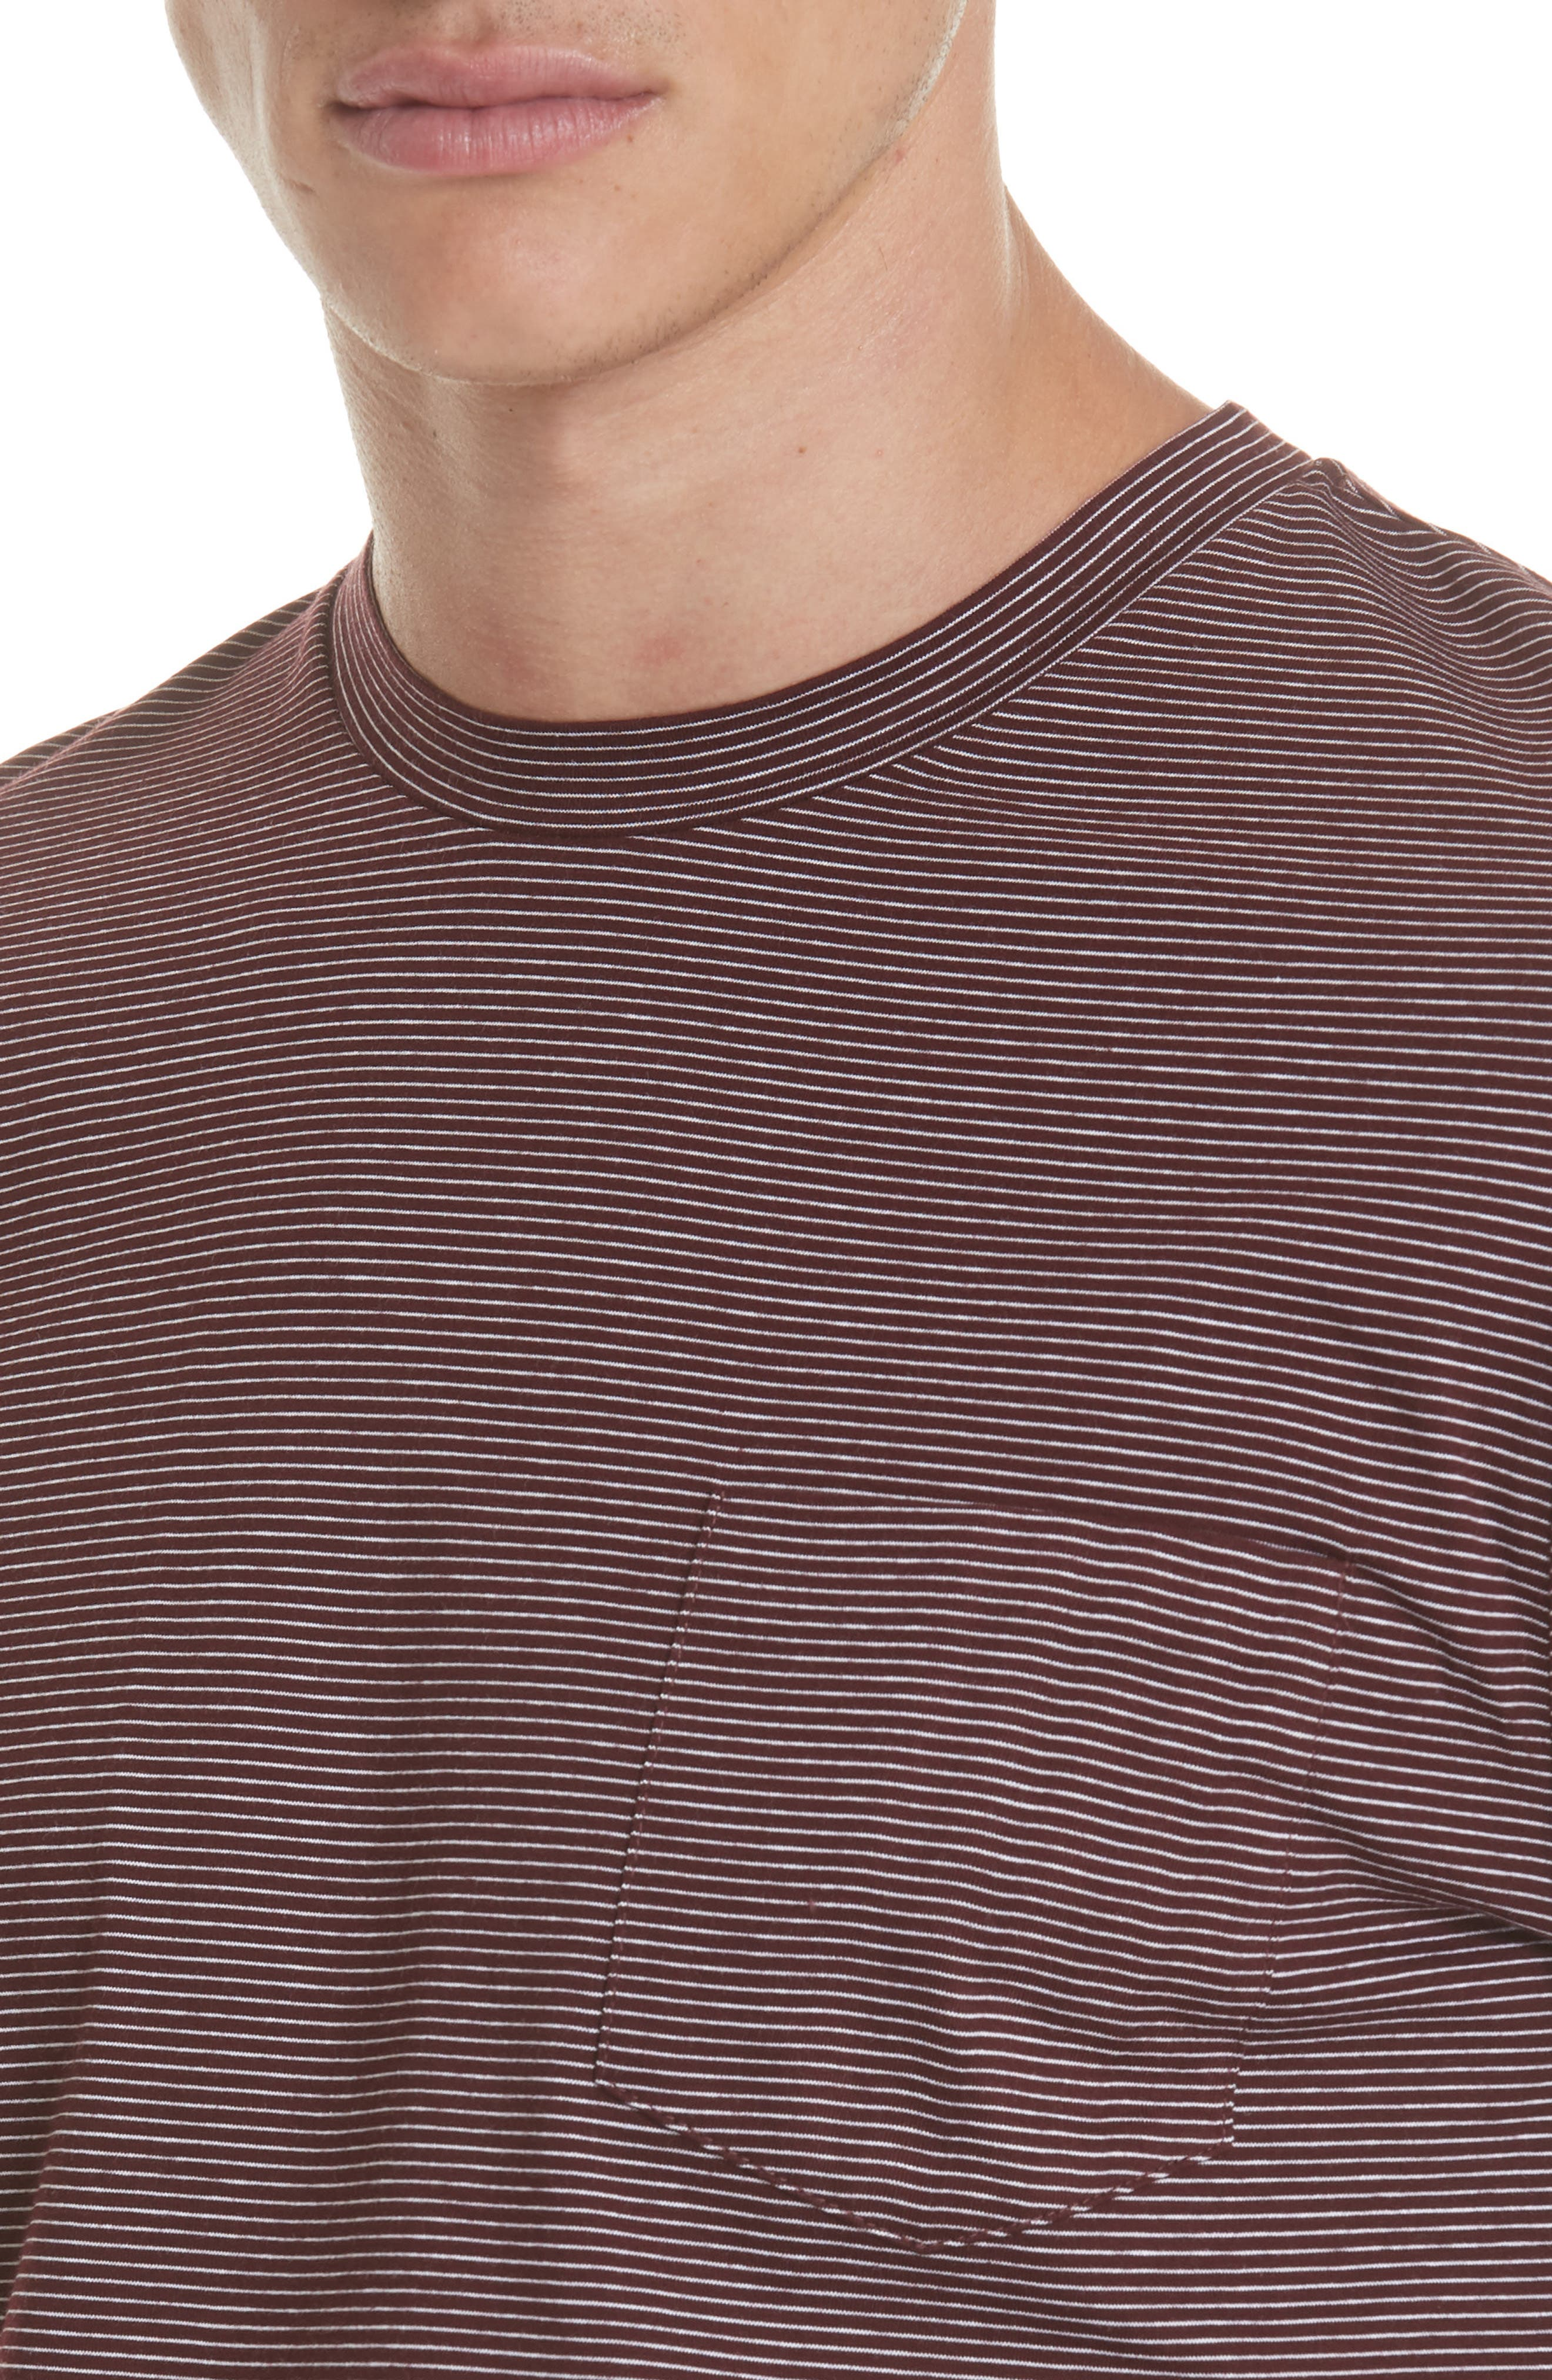 Stripe Pocket T-Shirt,                             Alternate thumbnail 4, color,                             BURGUNDY